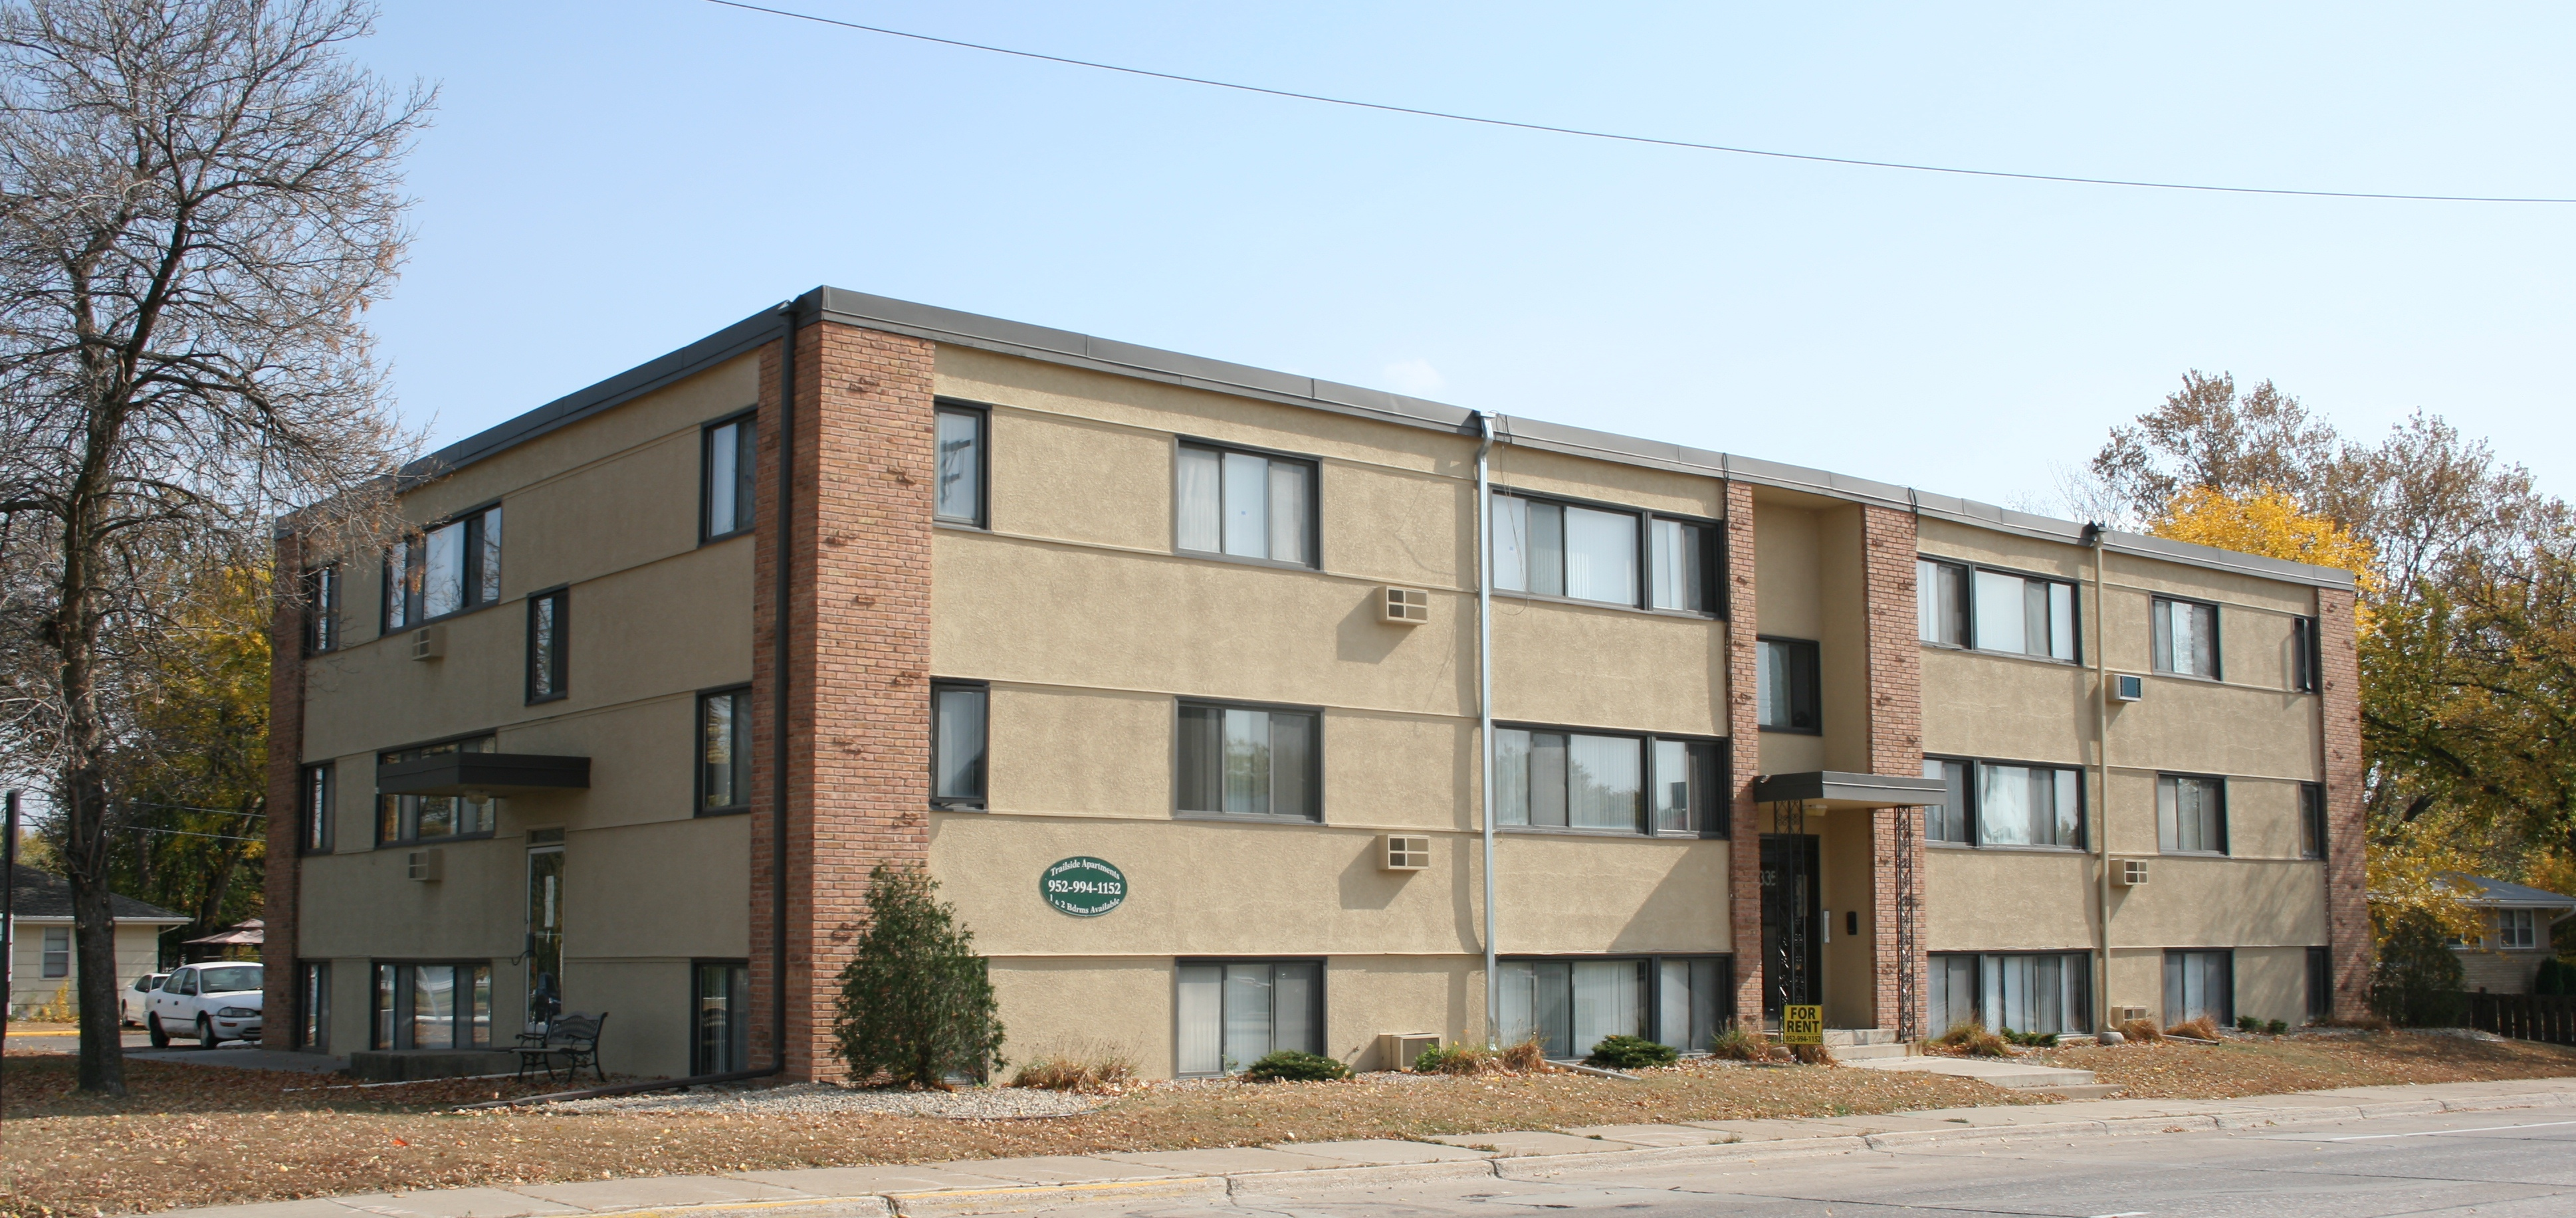 Image of Trailside Apartments